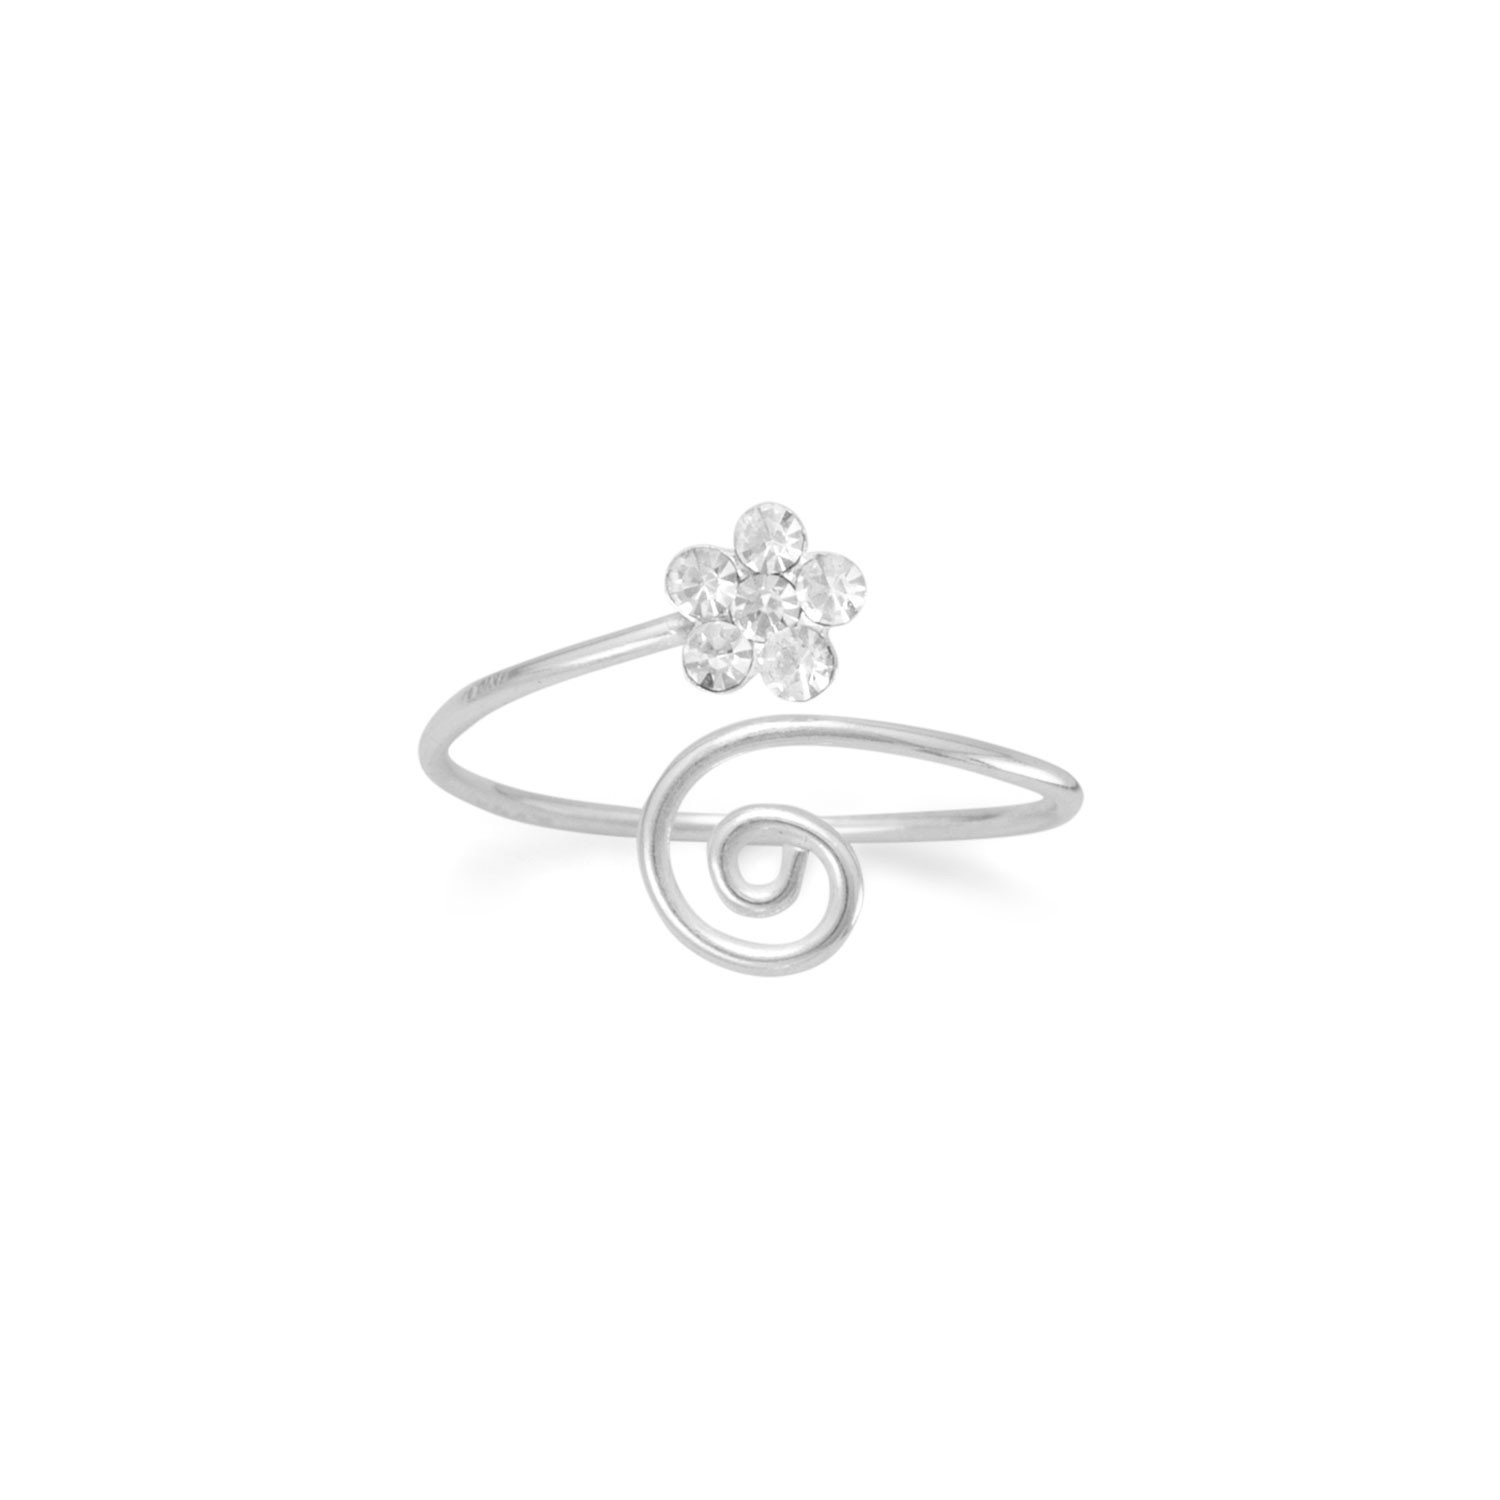 Wrap Design Toe Ring with Clear Crystal Flower